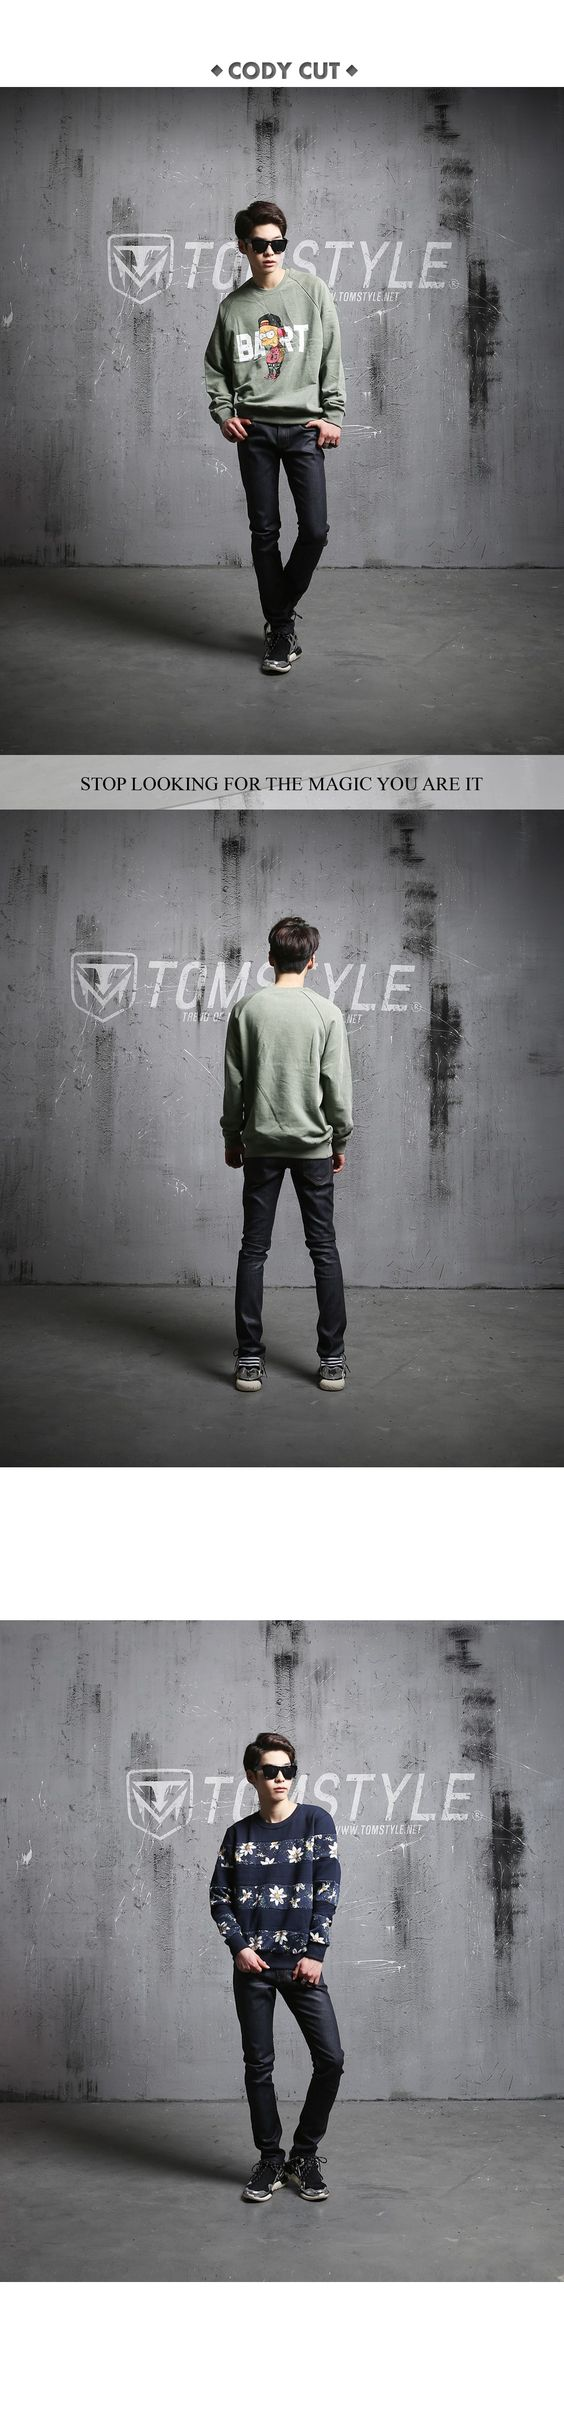 K-POP Men's Fashion Style Store [TOMSYTLE]  coating dough Skinny PT / Size : S,M,L / Price : 46.96 USD #dailylook #dailyfashion #casuallook #bottom #pants #skinnypants #unique #TOMSTYLE #OOTD  http://en.tomstyle.net/